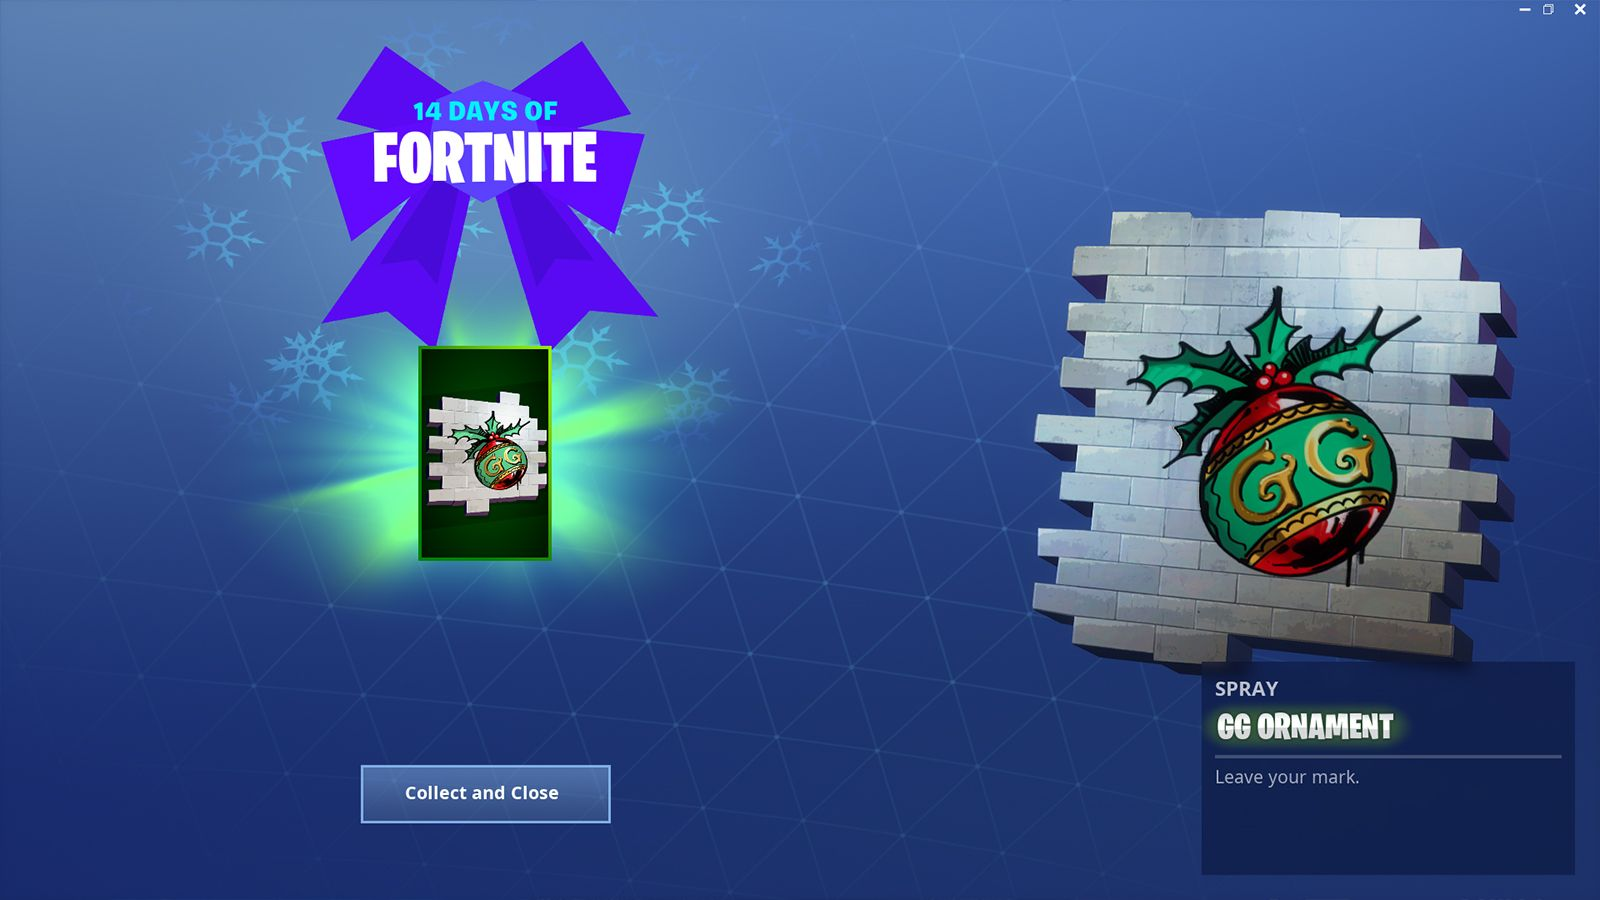 How To Complete The First 14 Days Of Fortnite Challenge The First Of